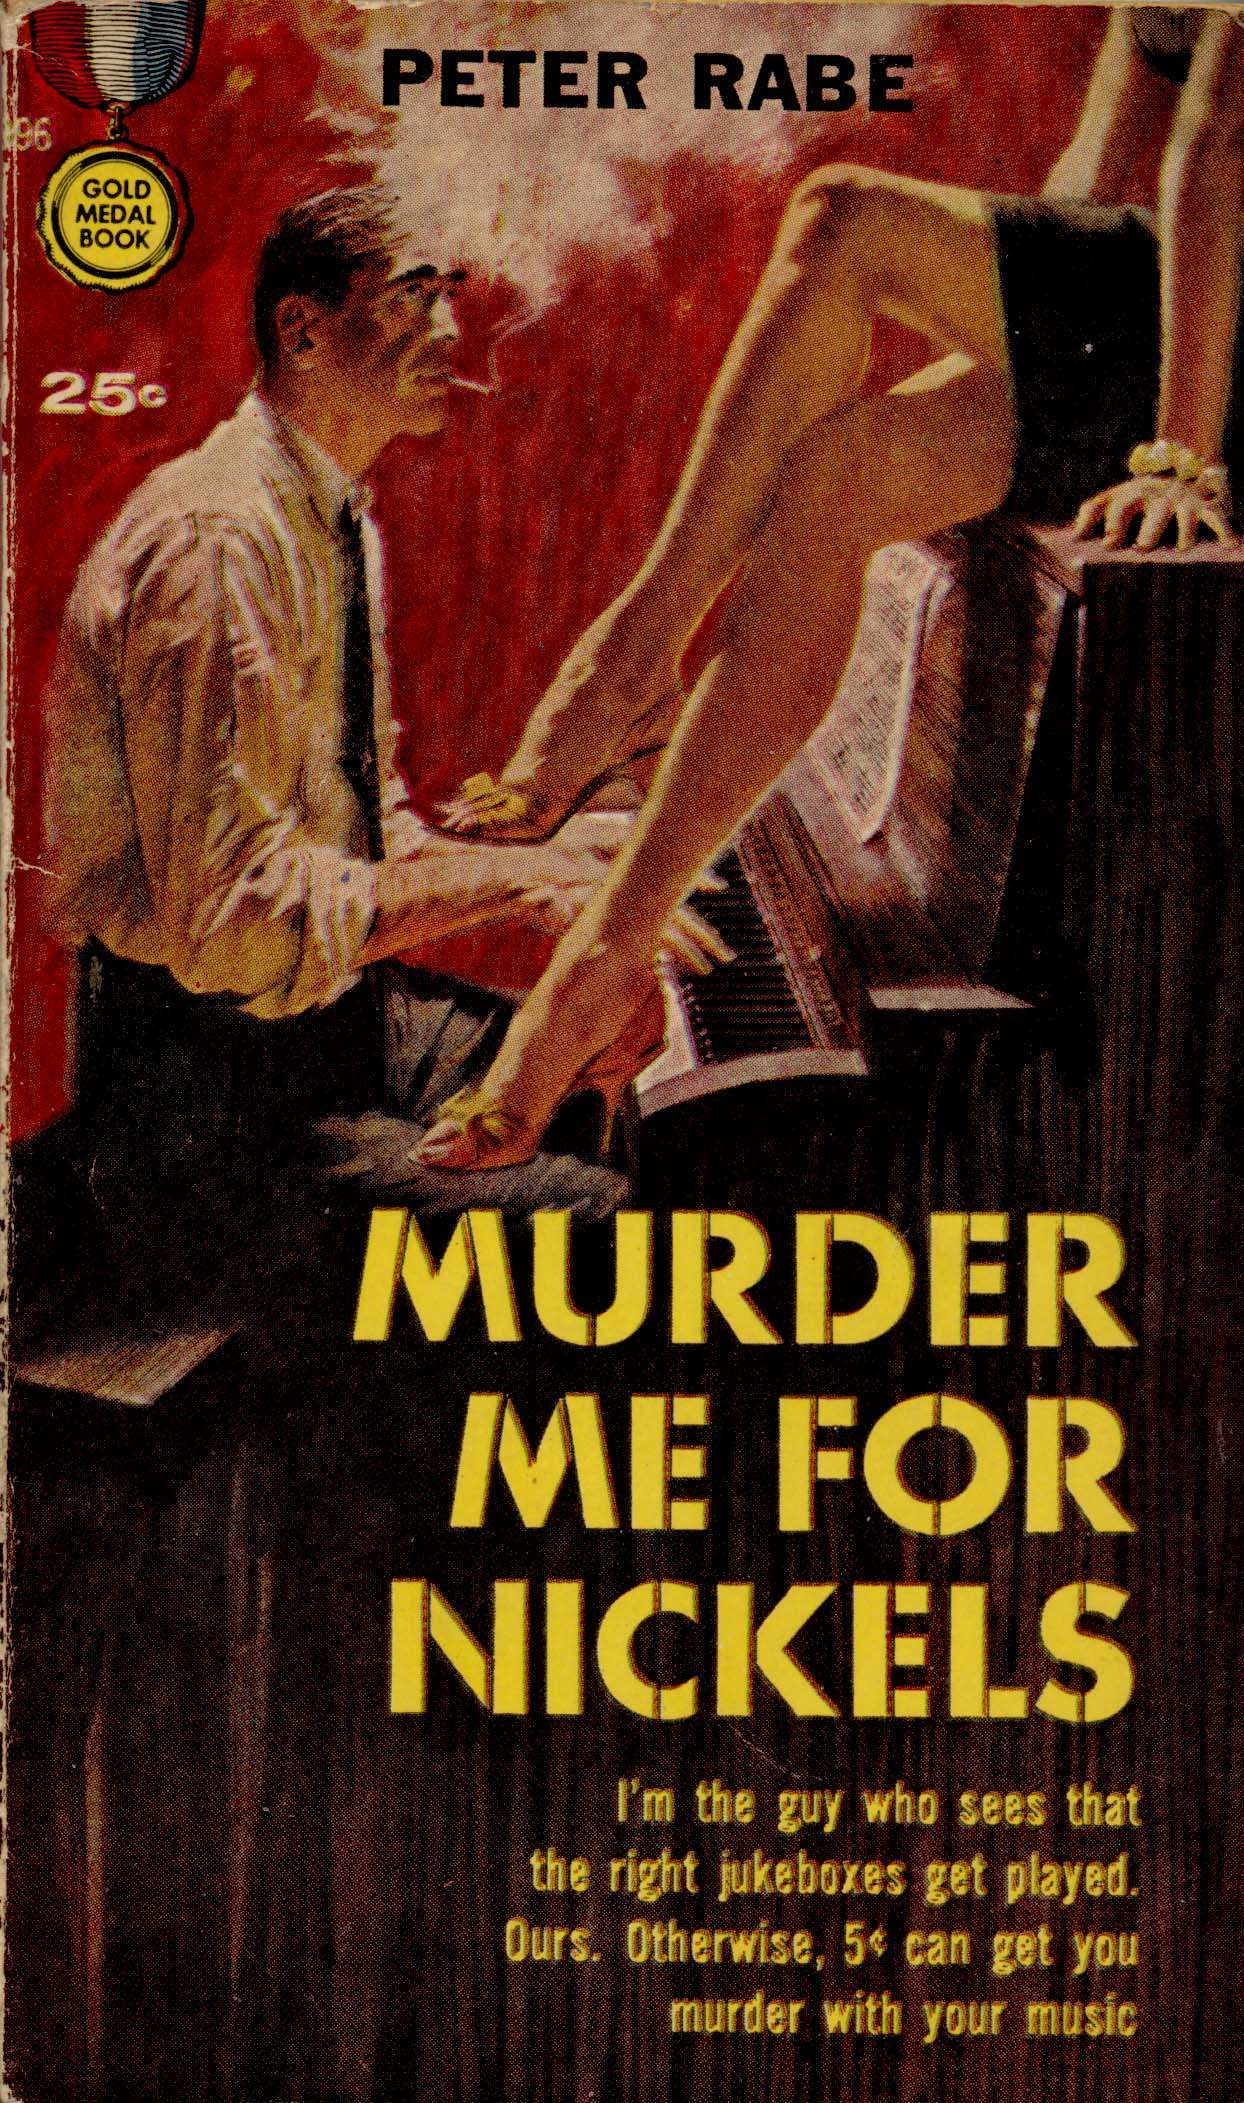 Murder Me for Nickels, 1960.